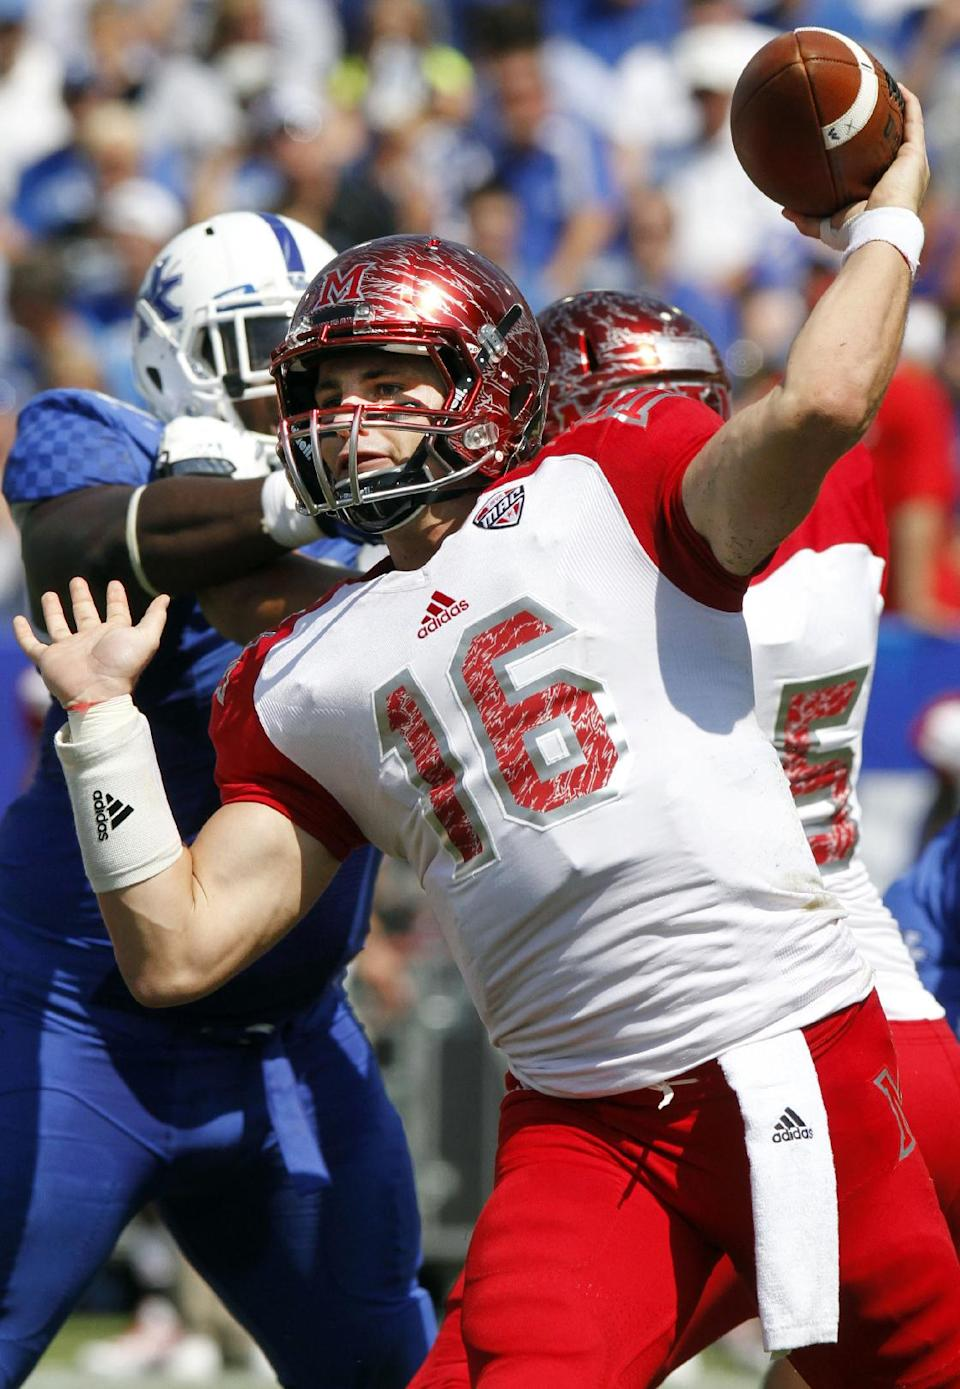 Kentucky blows out Miami (Ohio) 41-7